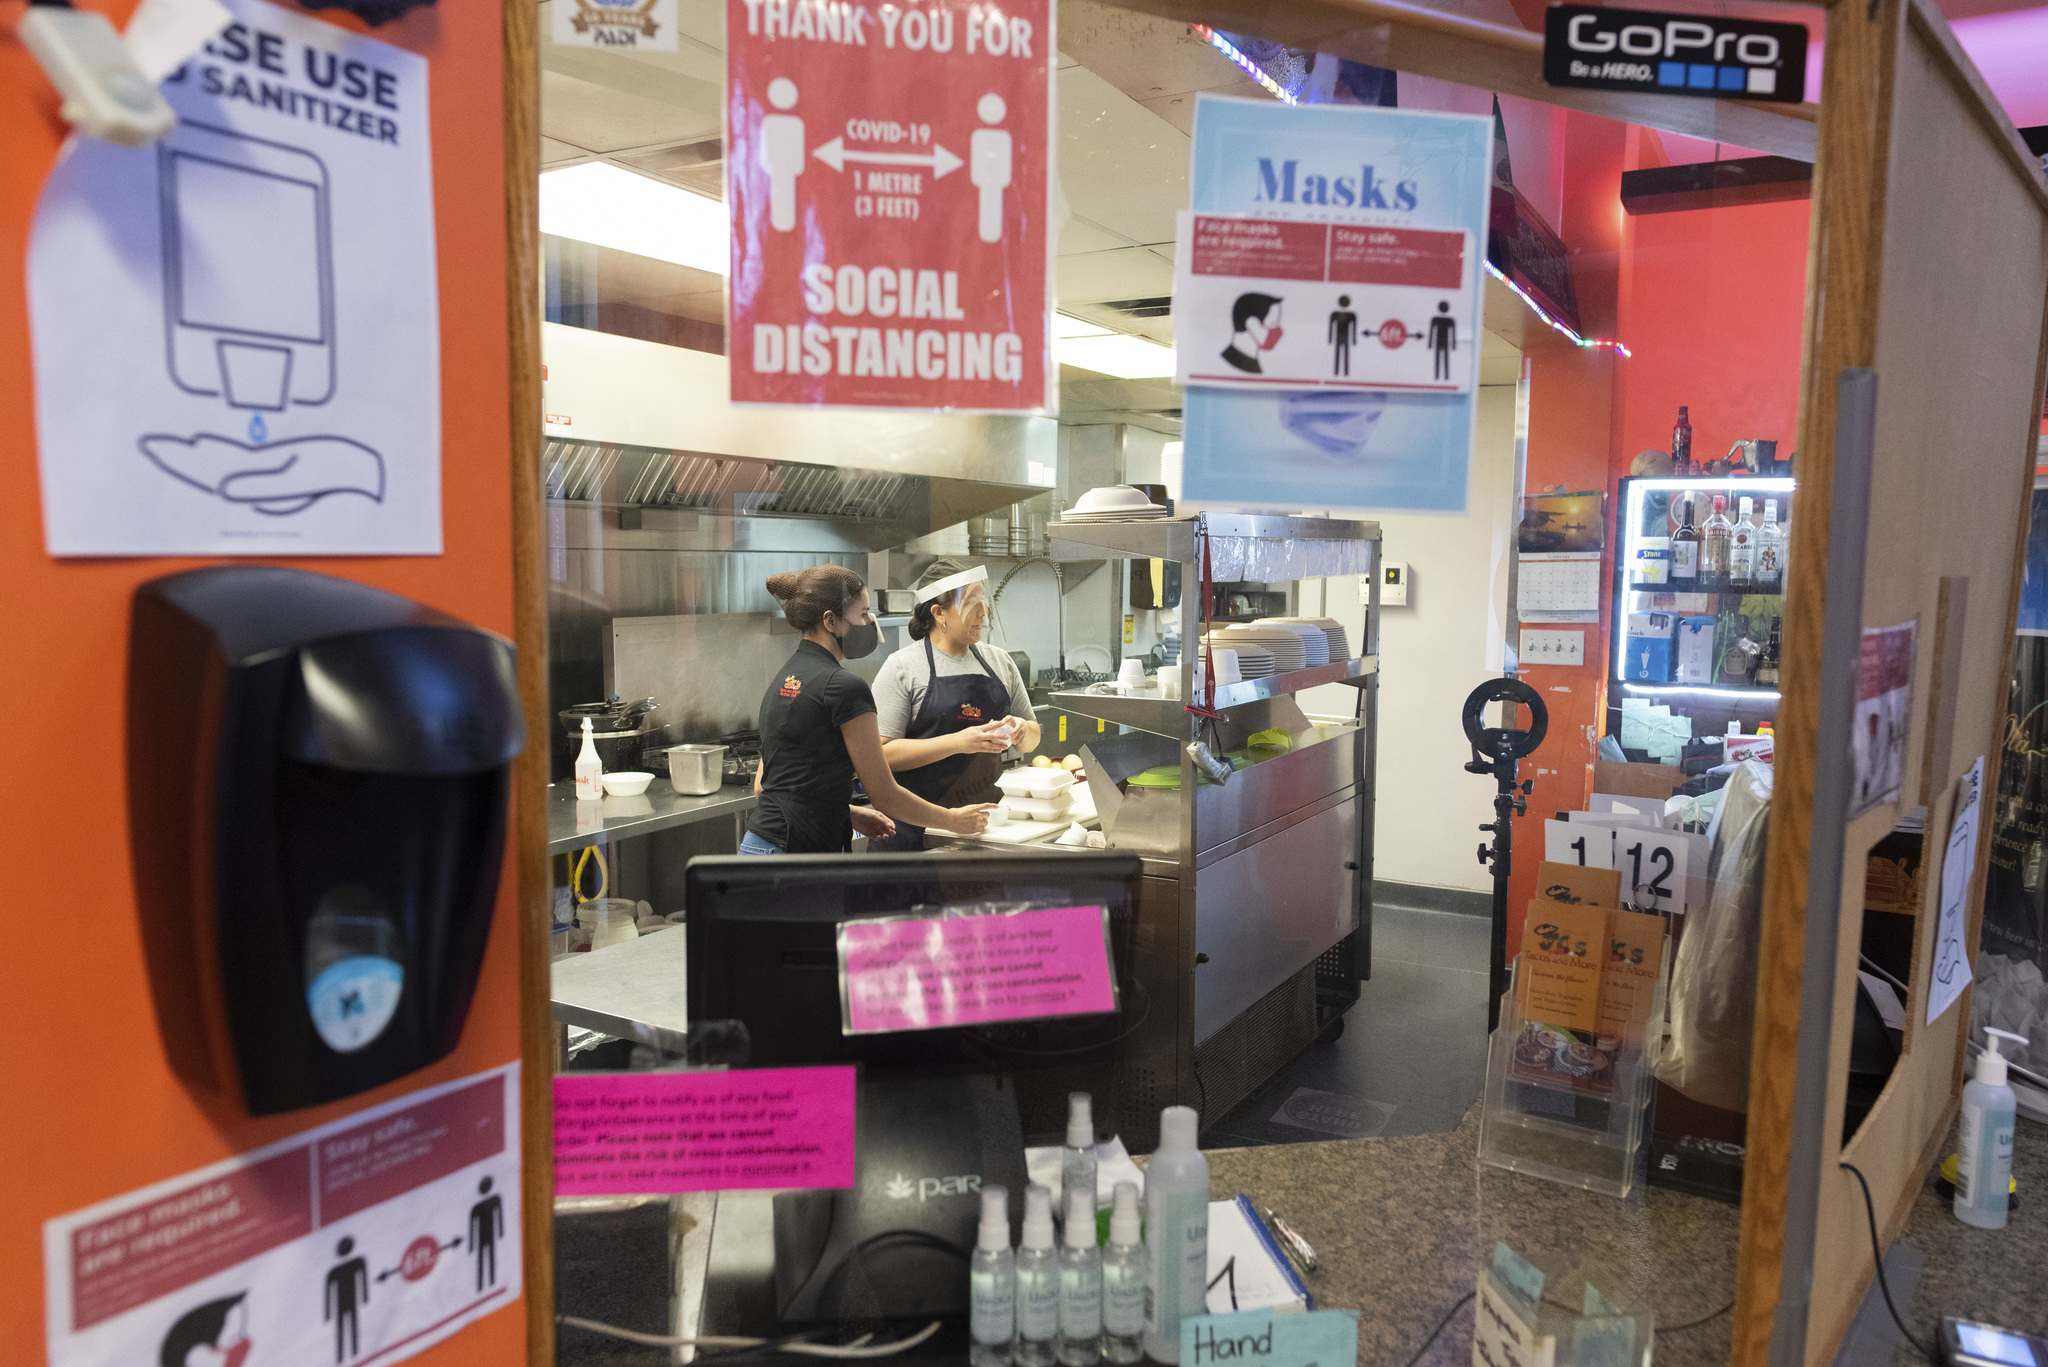 JESSE BOILY / WINNIPEG FREE PRESS</p><p>Angie Lozano, left, and Paola Ariza prepare an order for takeout behind a plexiglass barrier at JC's Tacos and More on Thursday. Restaurants such as JC's Tacos and More have spent big money on safety equipment for preventing the spread of COVID-19.</p>